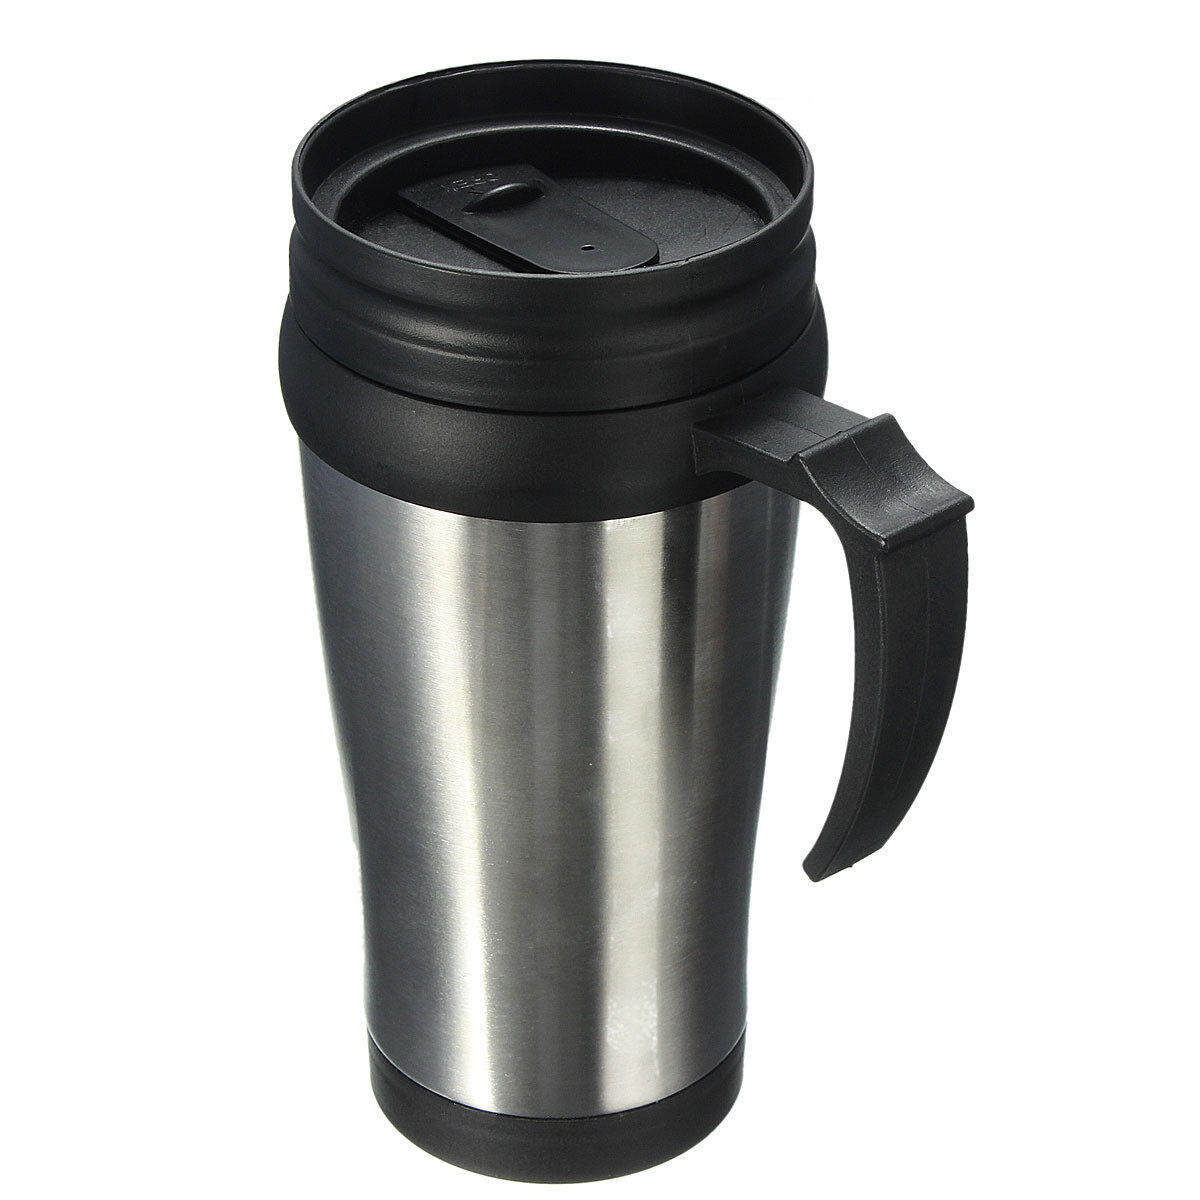 16 oz portable stainless steel insulated travel car coffee tea mug cup thermos lazada malaysia. Black Bedroom Furniture Sets. Home Design Ideas